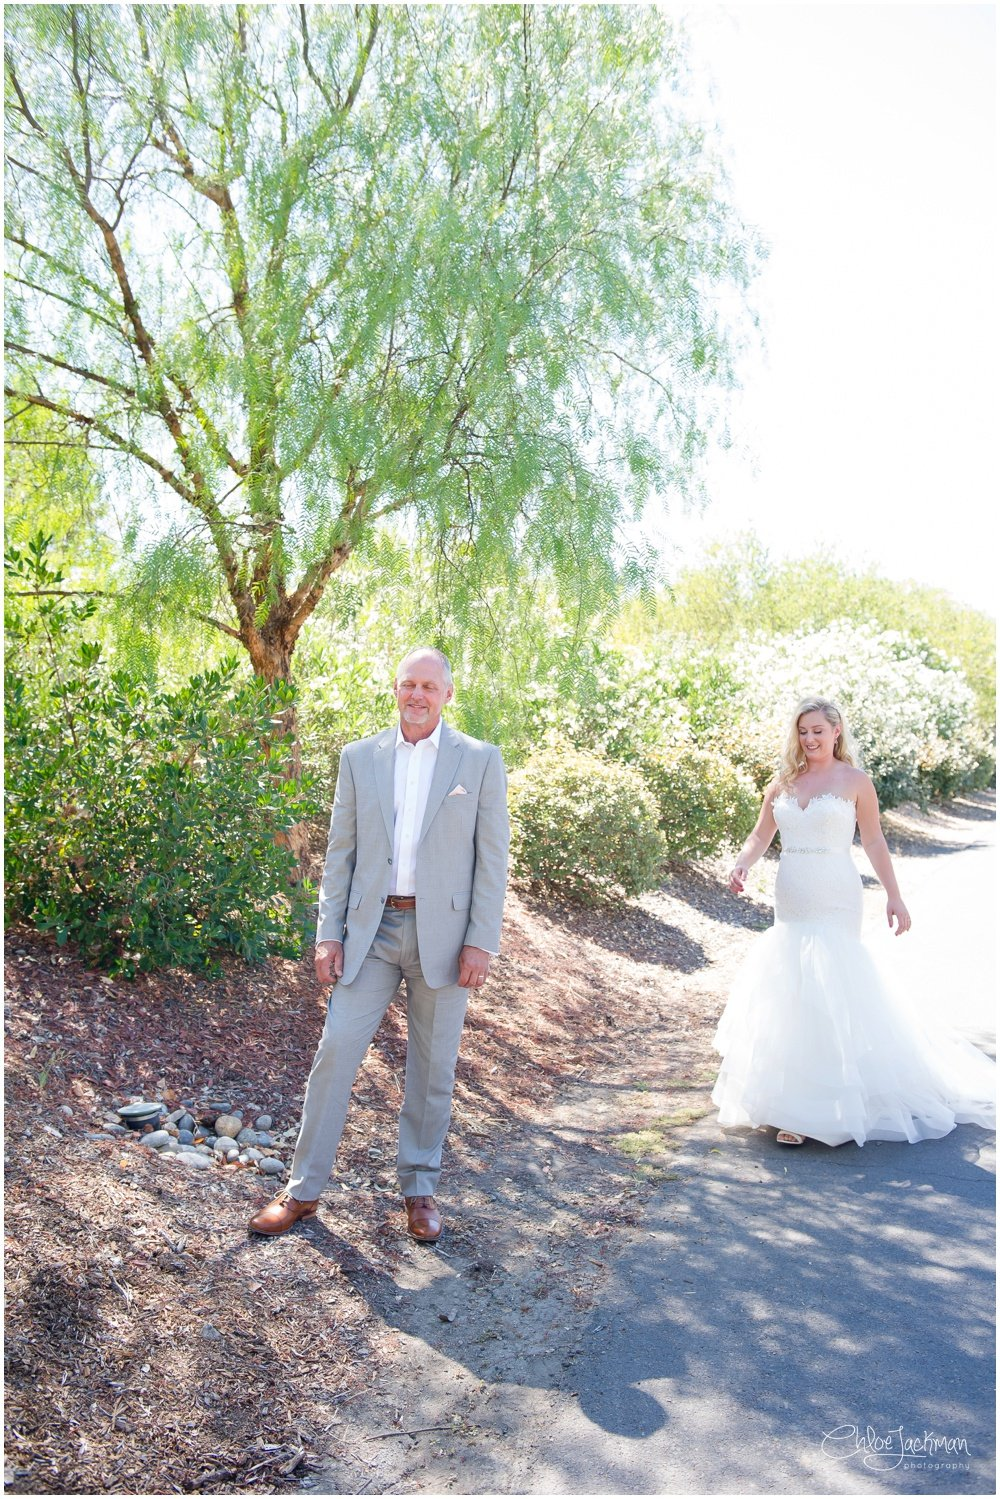 Bride wearing Tara Keely wedding dress and father of the bride first look